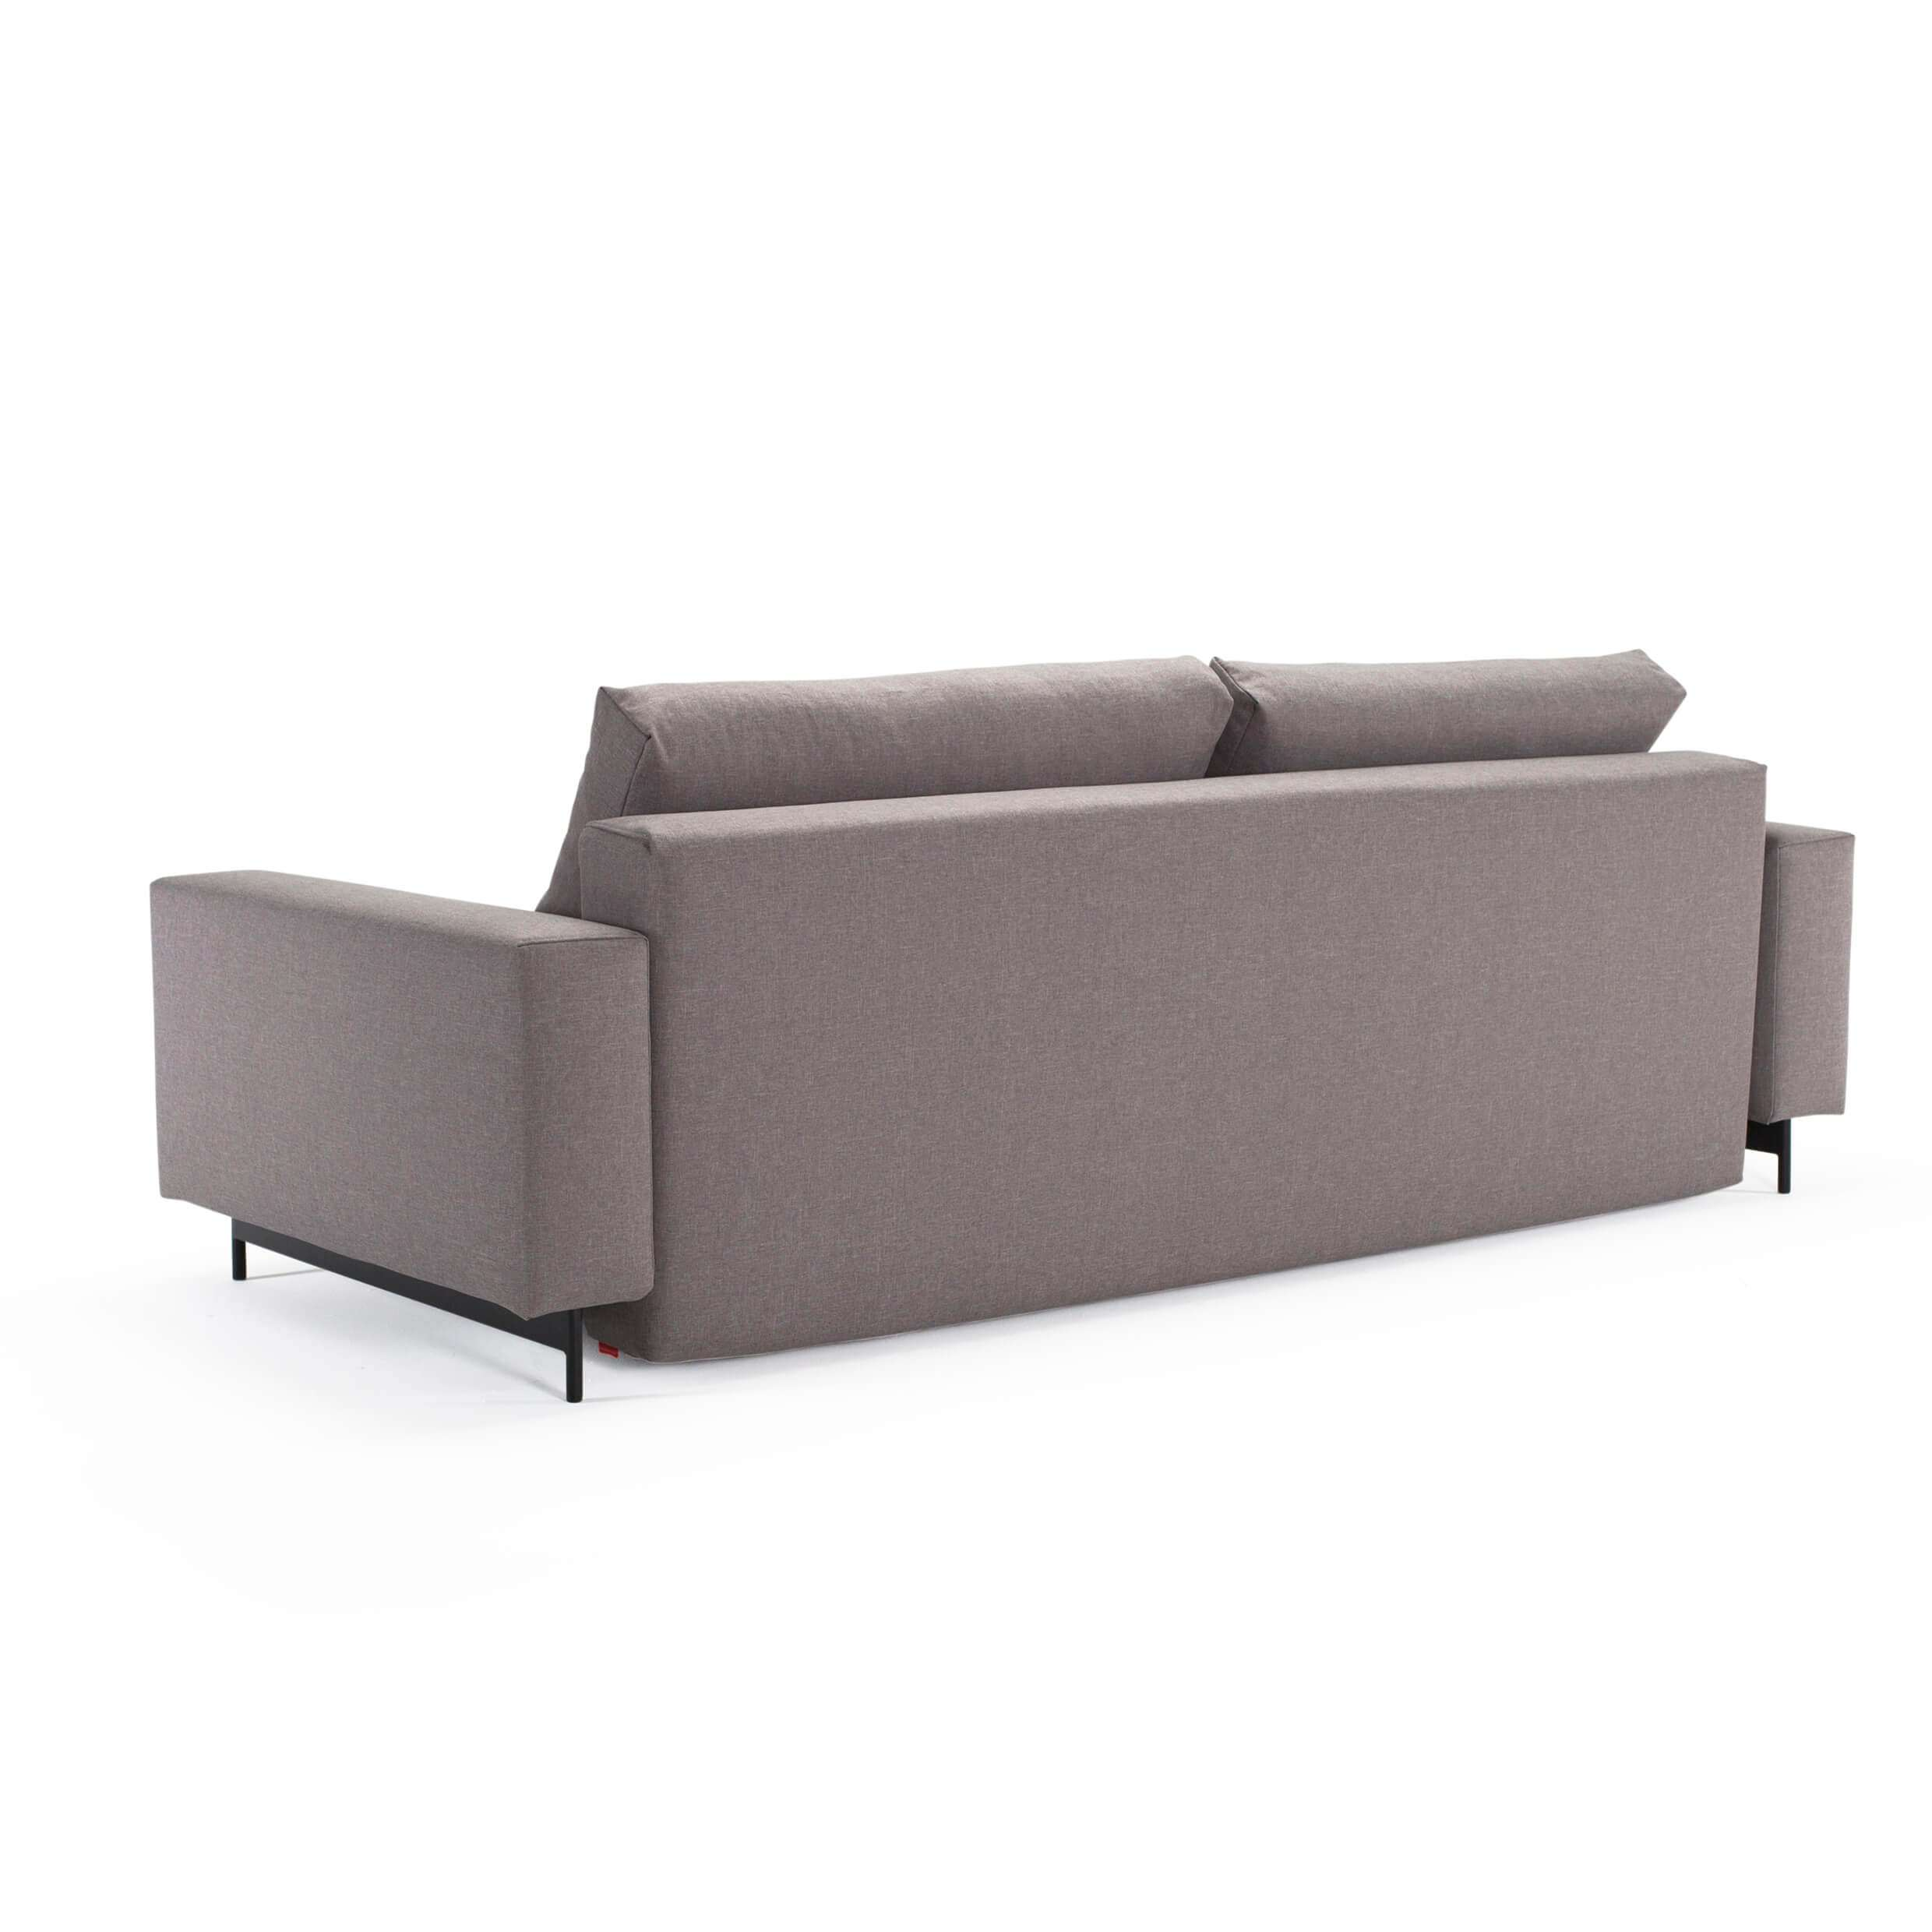 Sofa bed convertible rear view